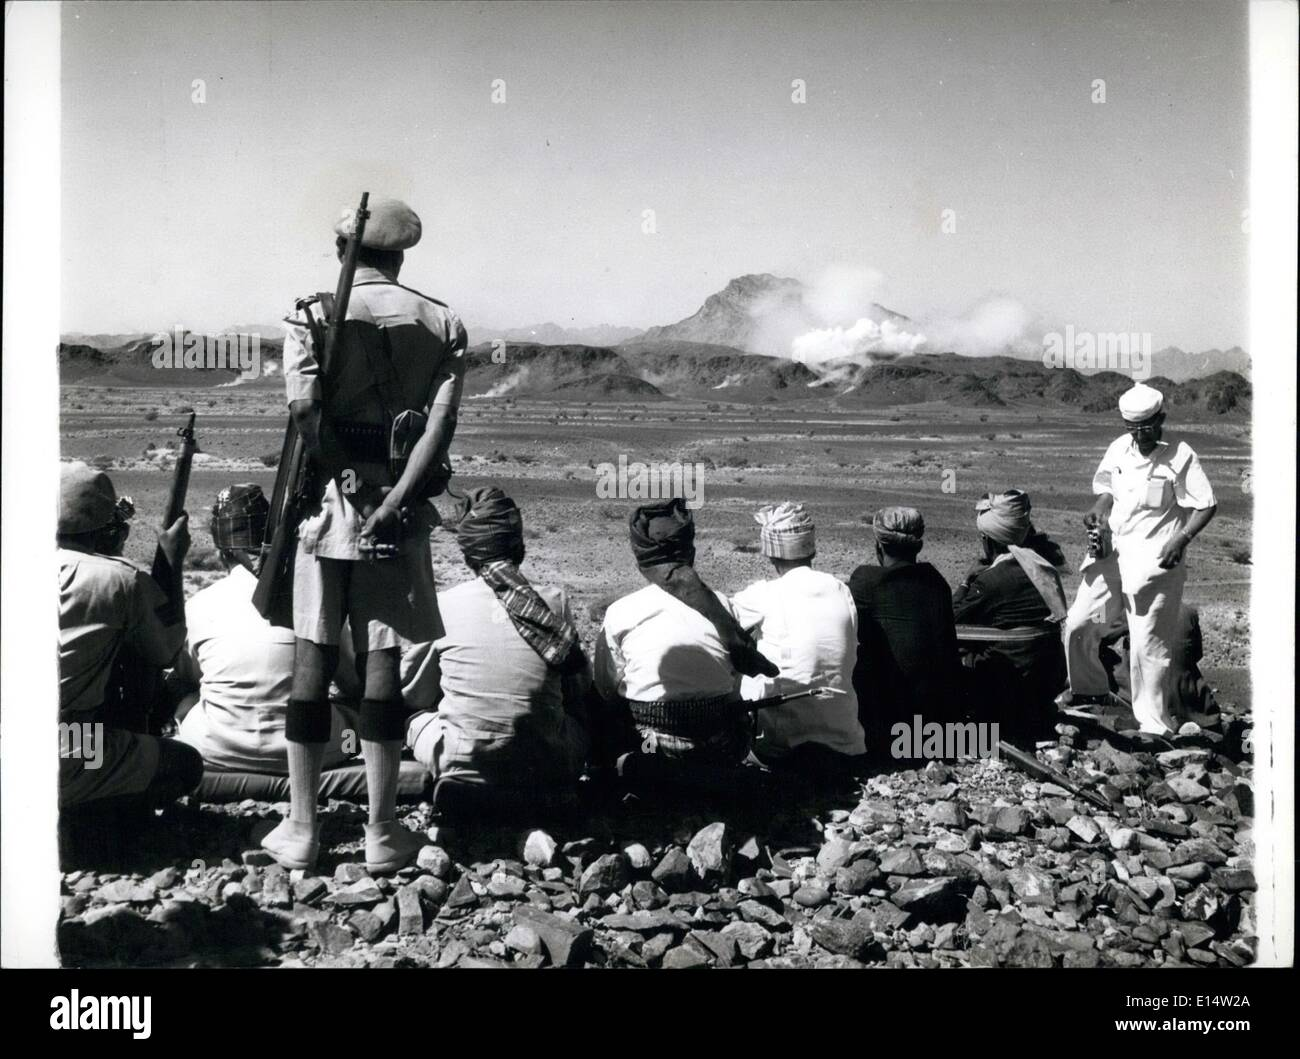 Apr. 18, 2012 - Yemen -Aden border : Sultans and Headmen watch the Aden Frontier hills as they are pounded by Mortar and Machine - Gunfire. - Stock Image